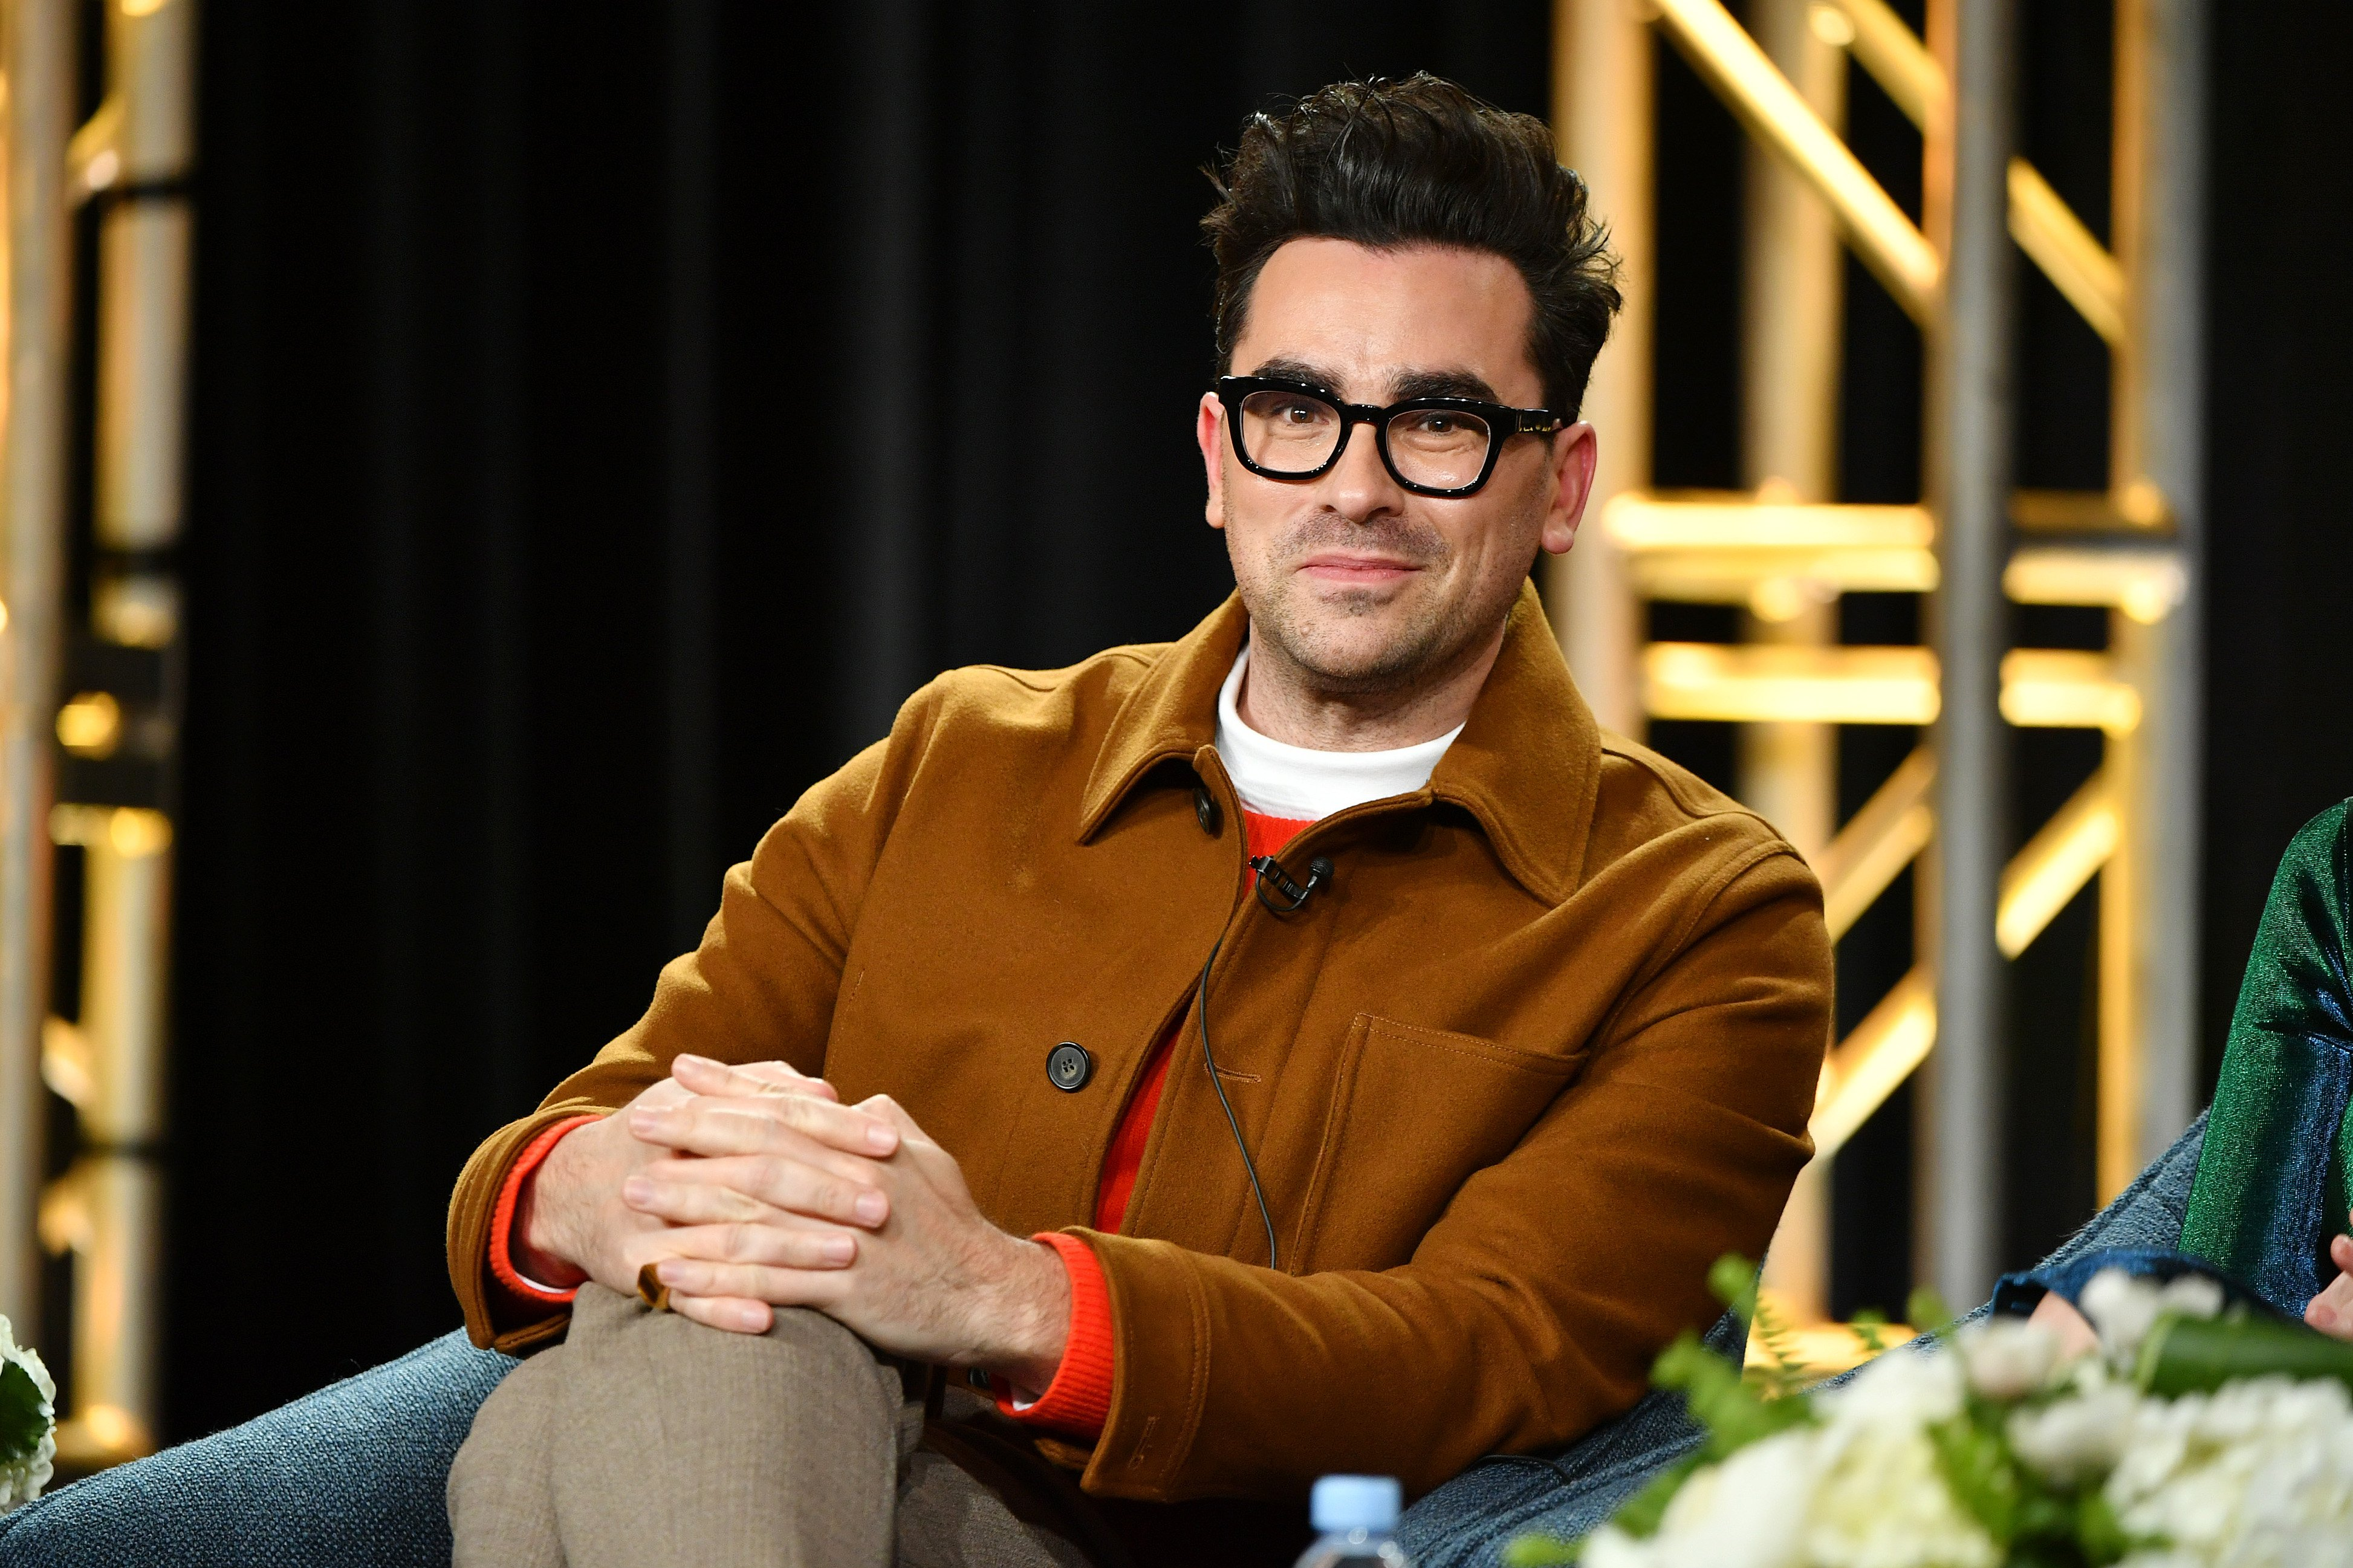 Dan Levy pictured speaking onstage at Pop TV segment of the 2020 Winter TCA Press Tour, 2020, California. | Photo: Getty Images